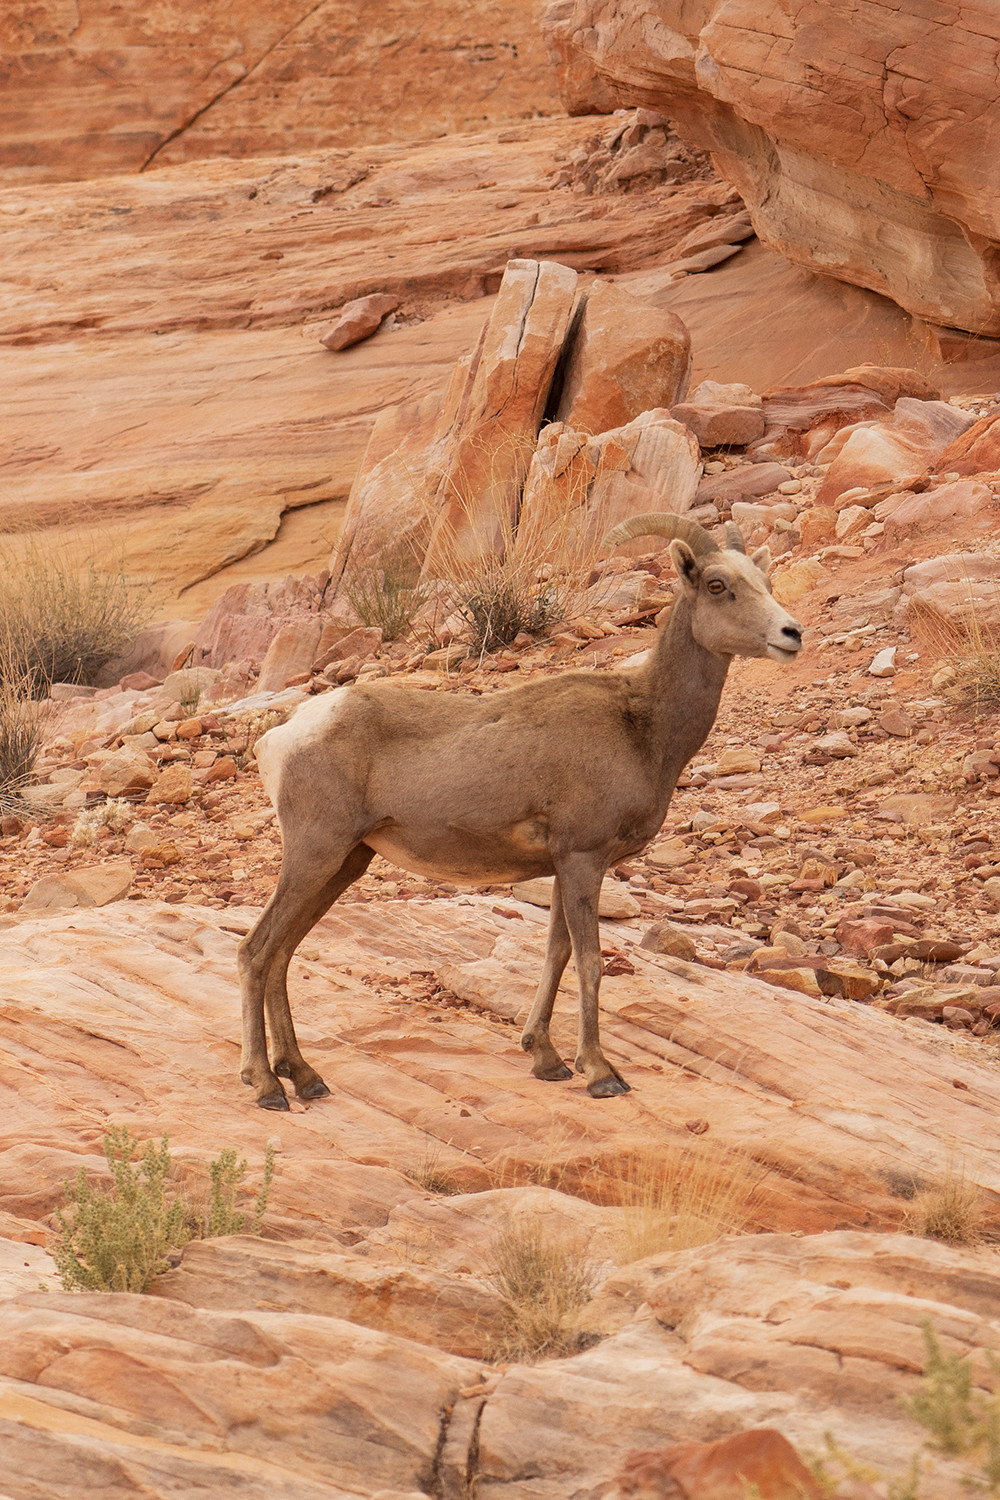 16valleyoffire-vegas-nevada-bighornsheep-wildanimal-travel-photography